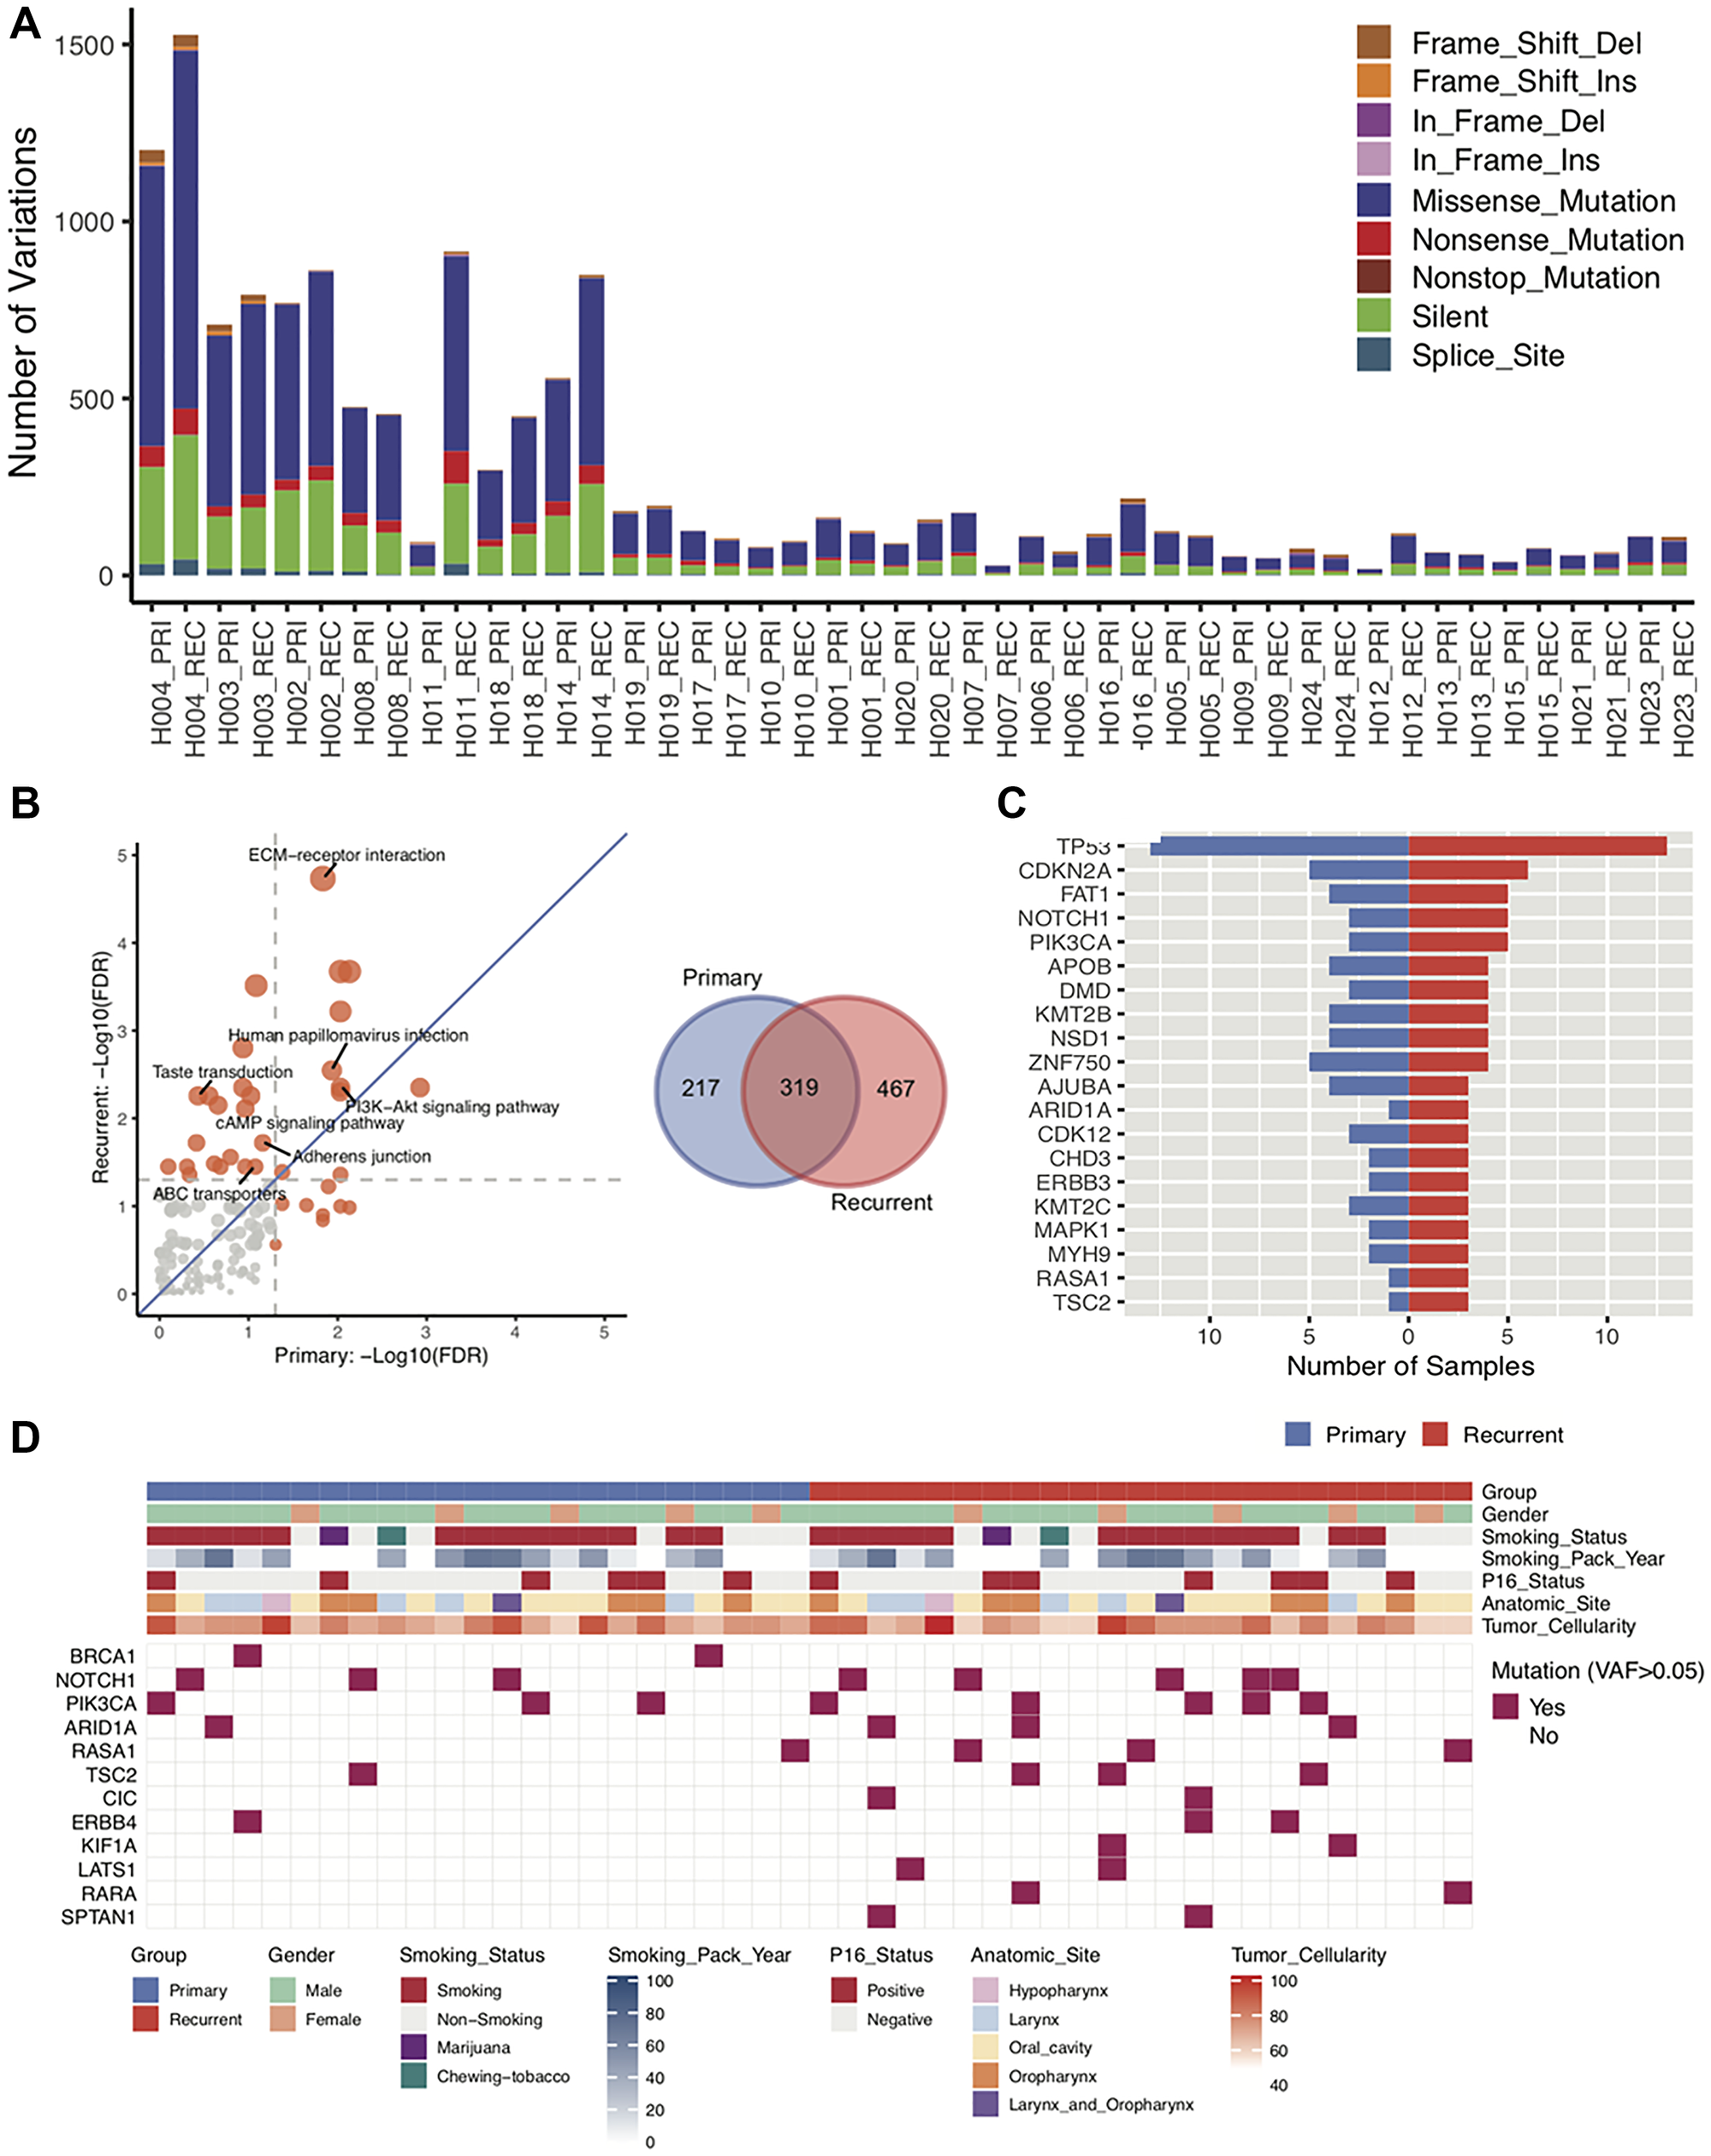 Characterization of DNA sequences of primary and recurrent/metastatic tumors.